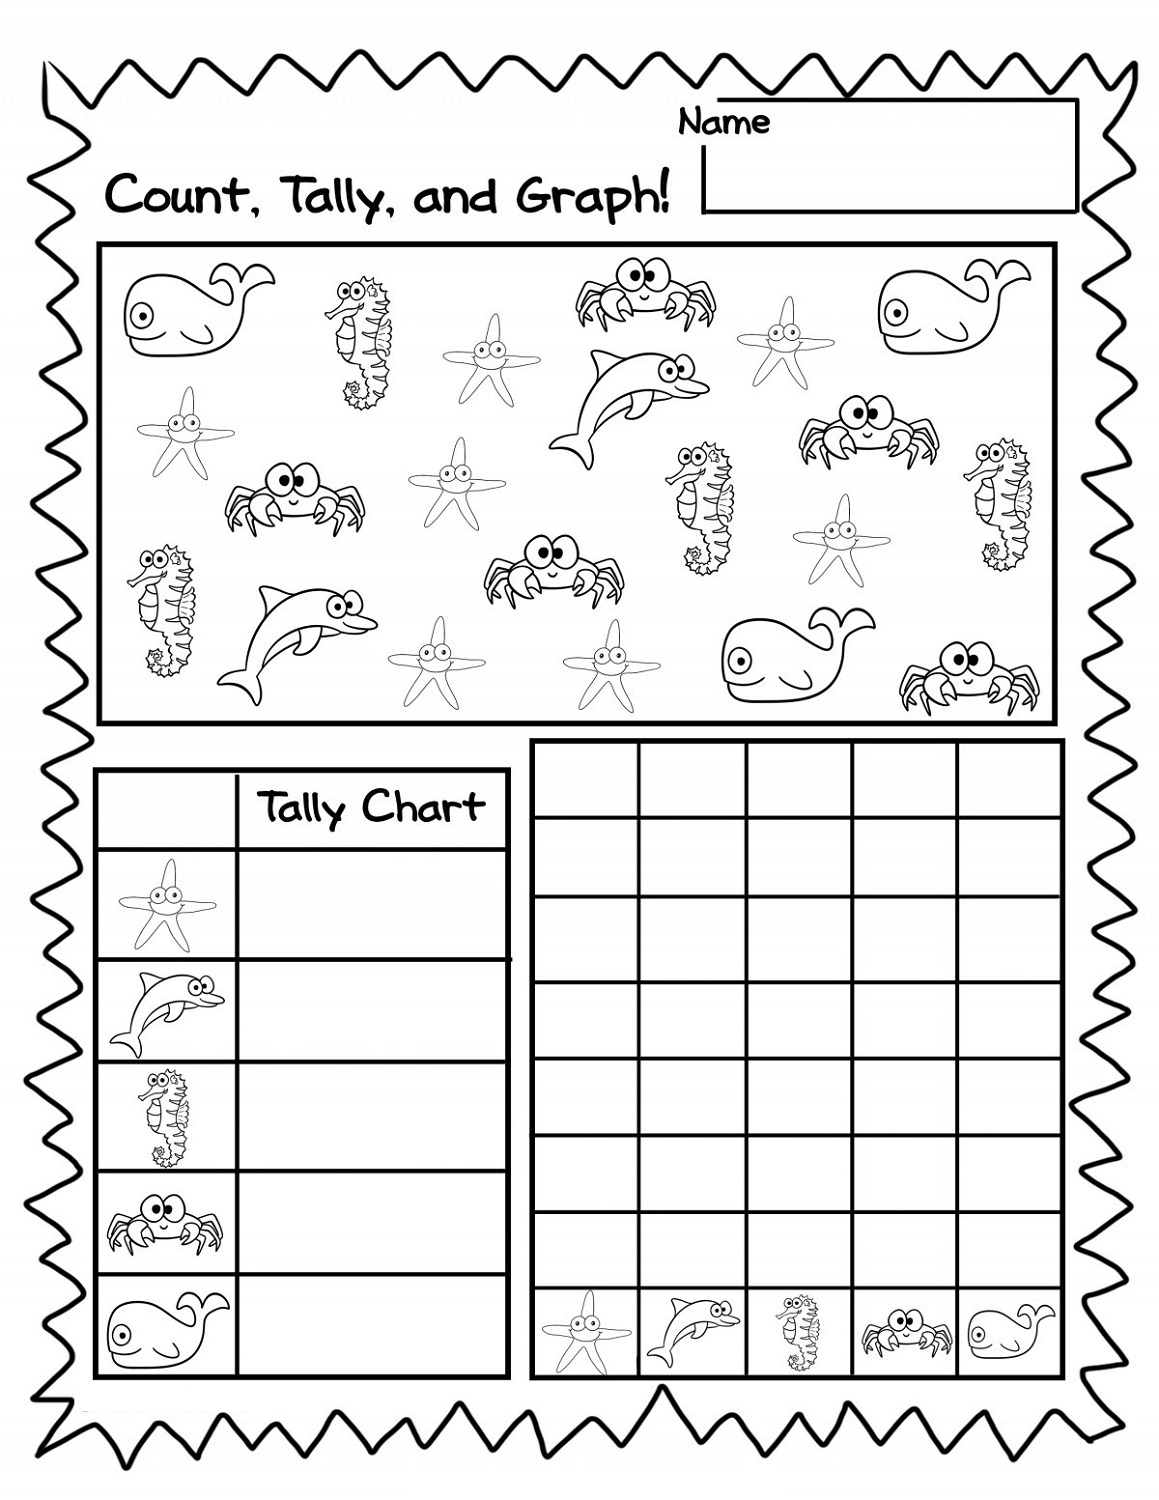 Fun Count Printable Math Games